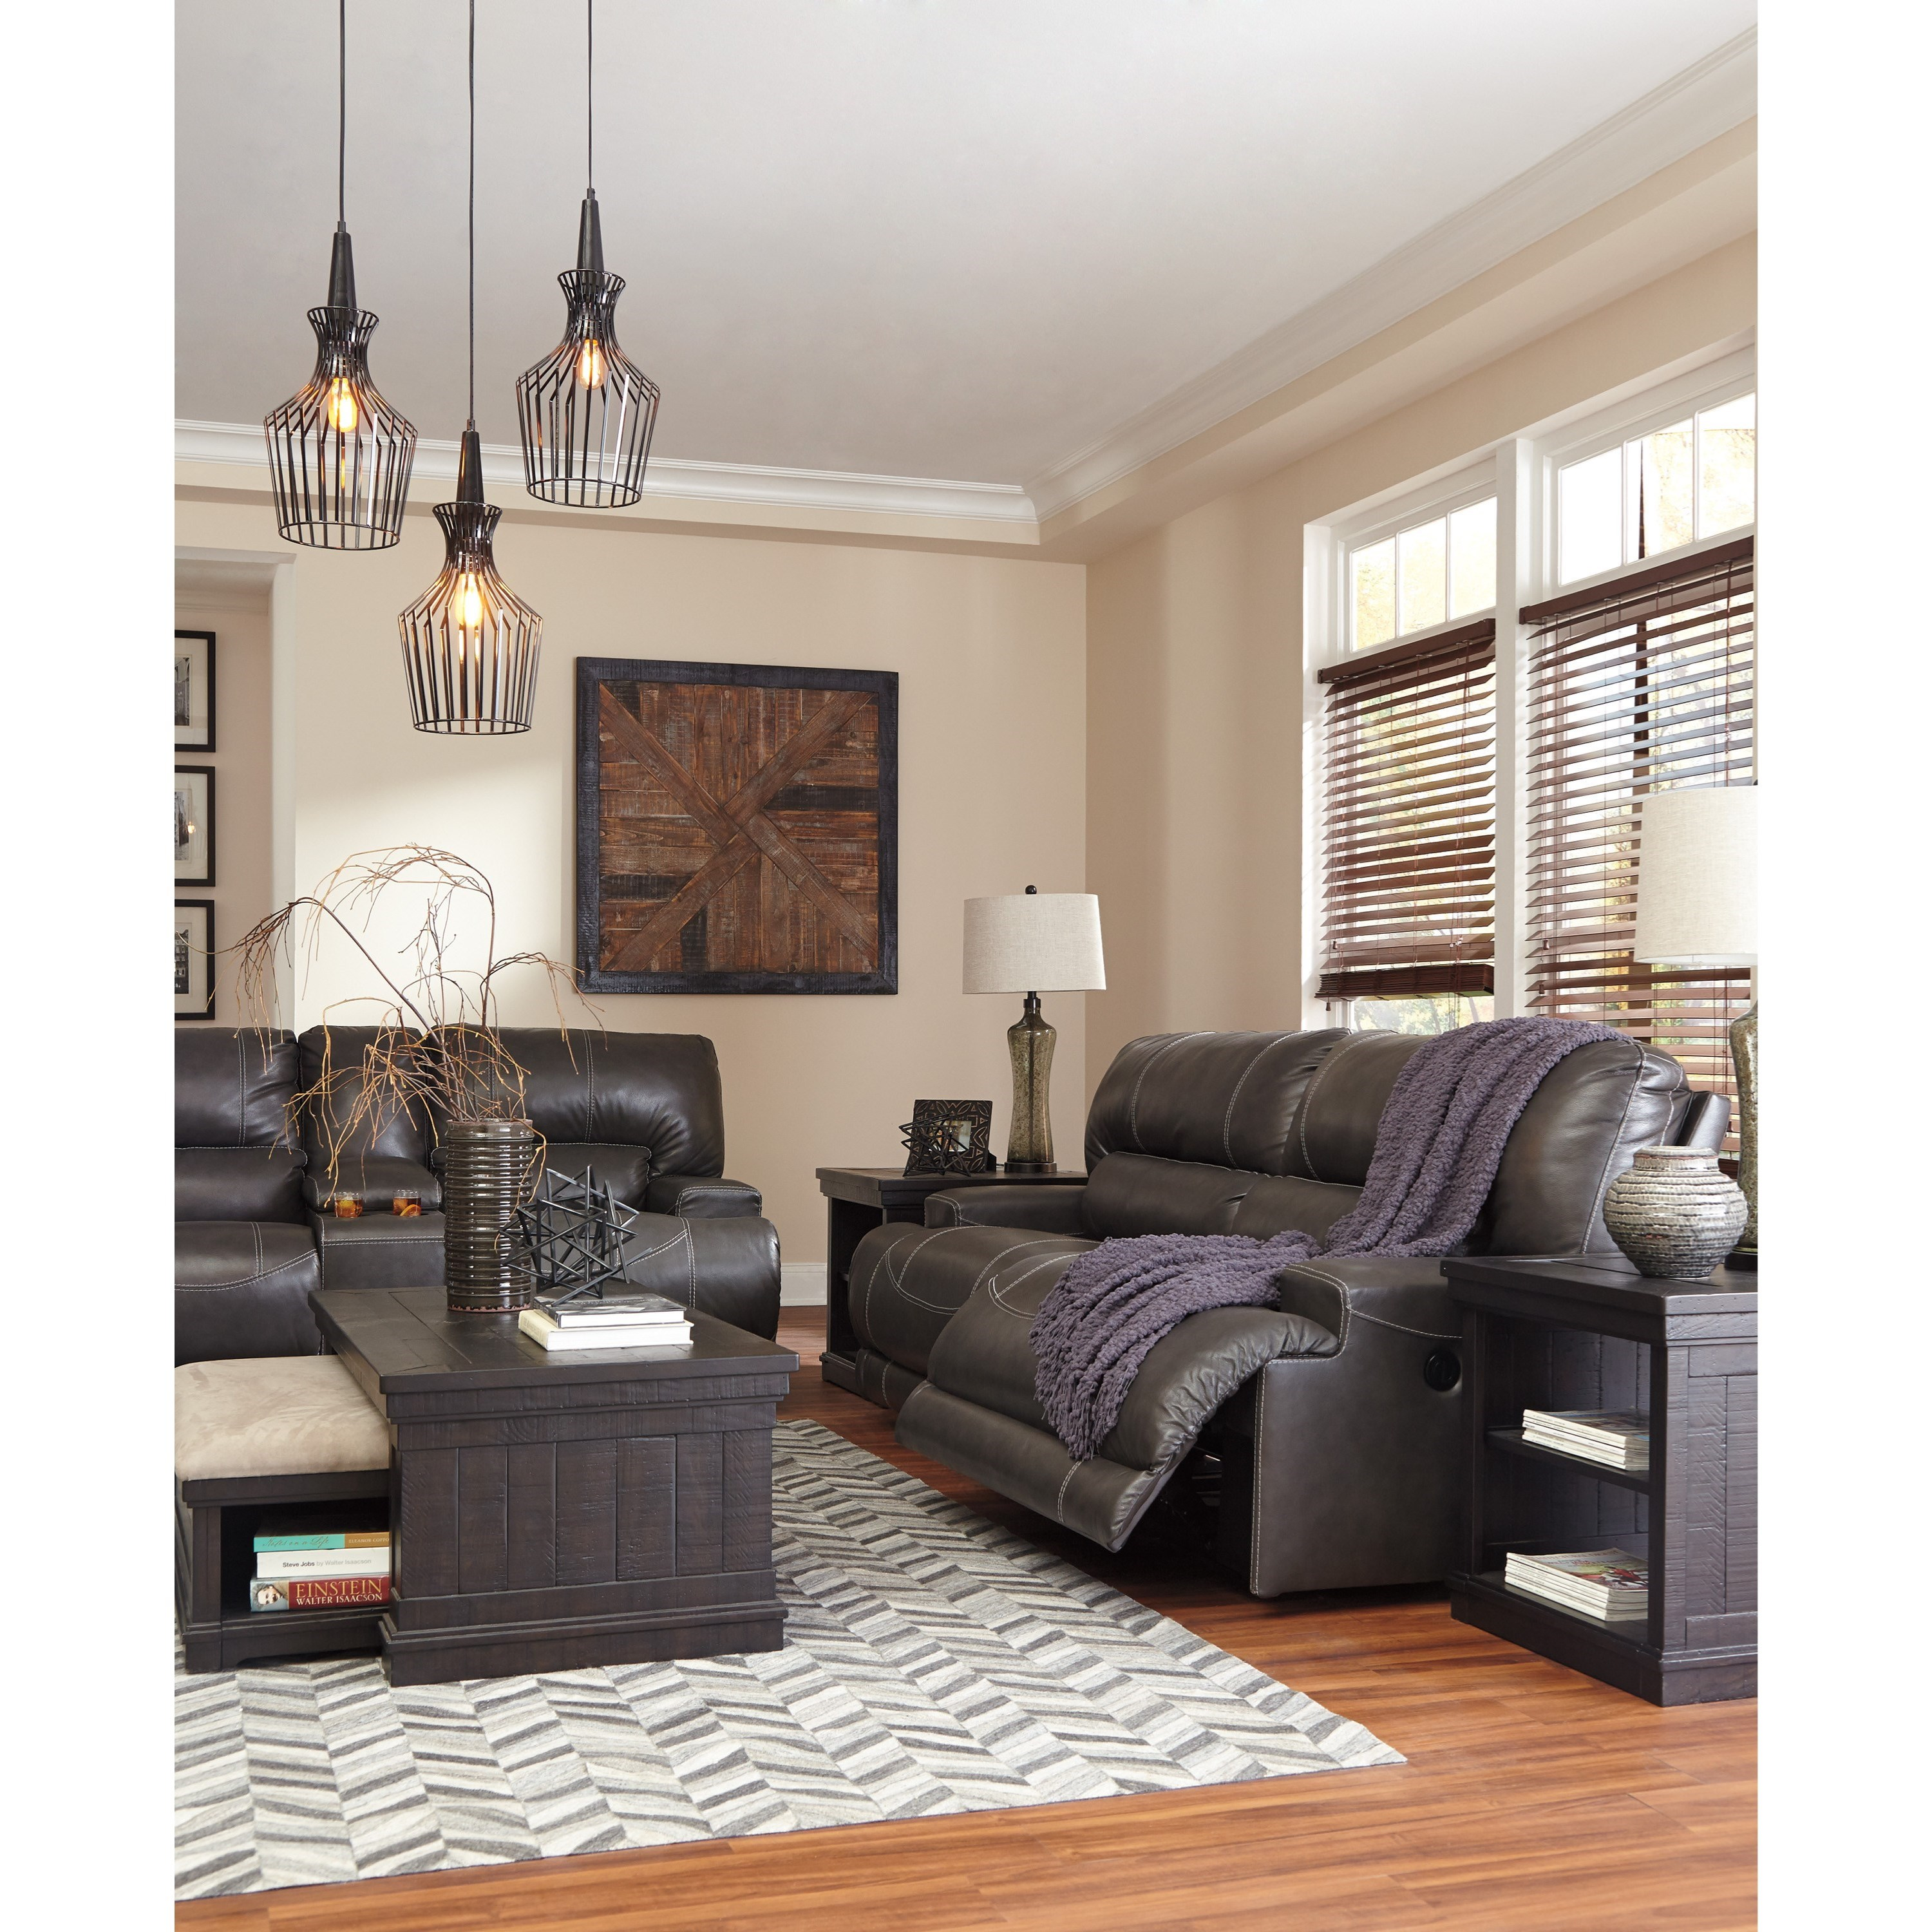 Ashley Furniture Prices Online: Signature Design By Ashley McCaskill Contemporary Leather